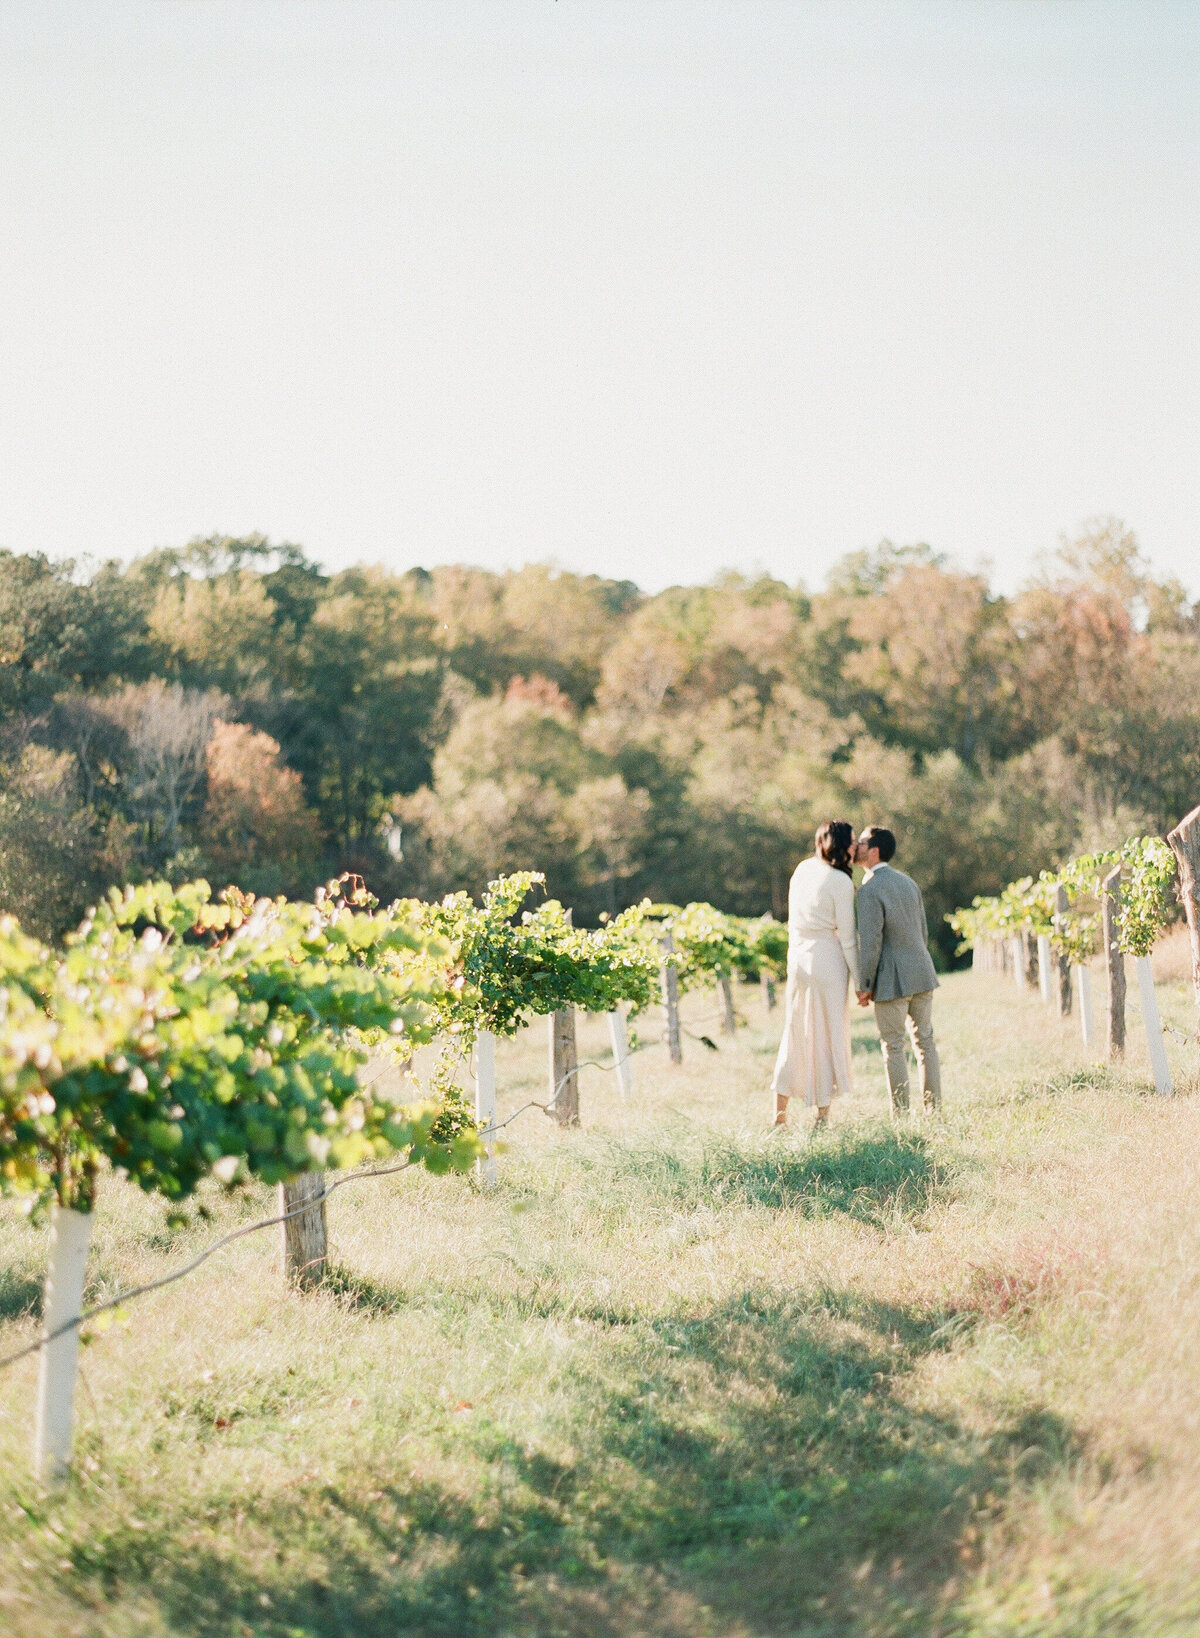 French Vineyard Engagement Photography at The Meadows in Raleigh, NC 6